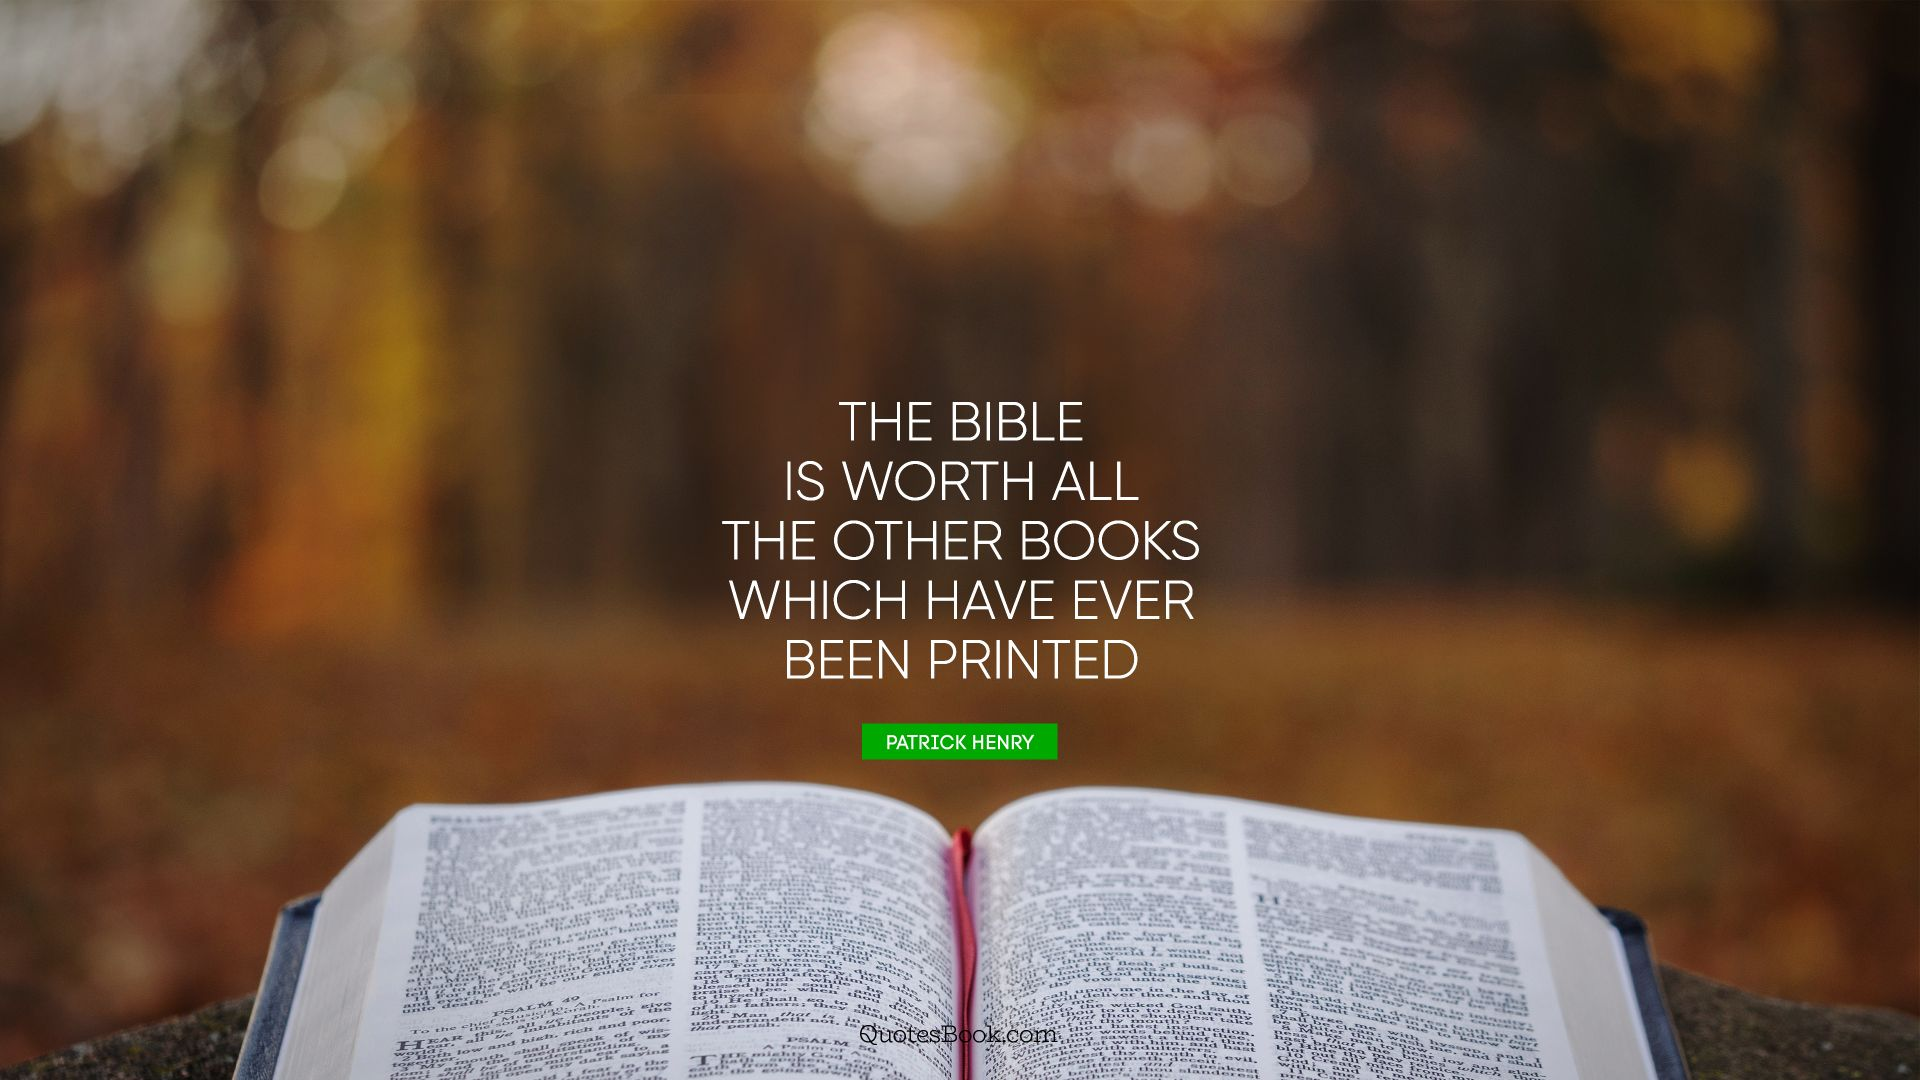 The Bible is worth all the other books which have ever been printed. - Quote by Patrick Henry